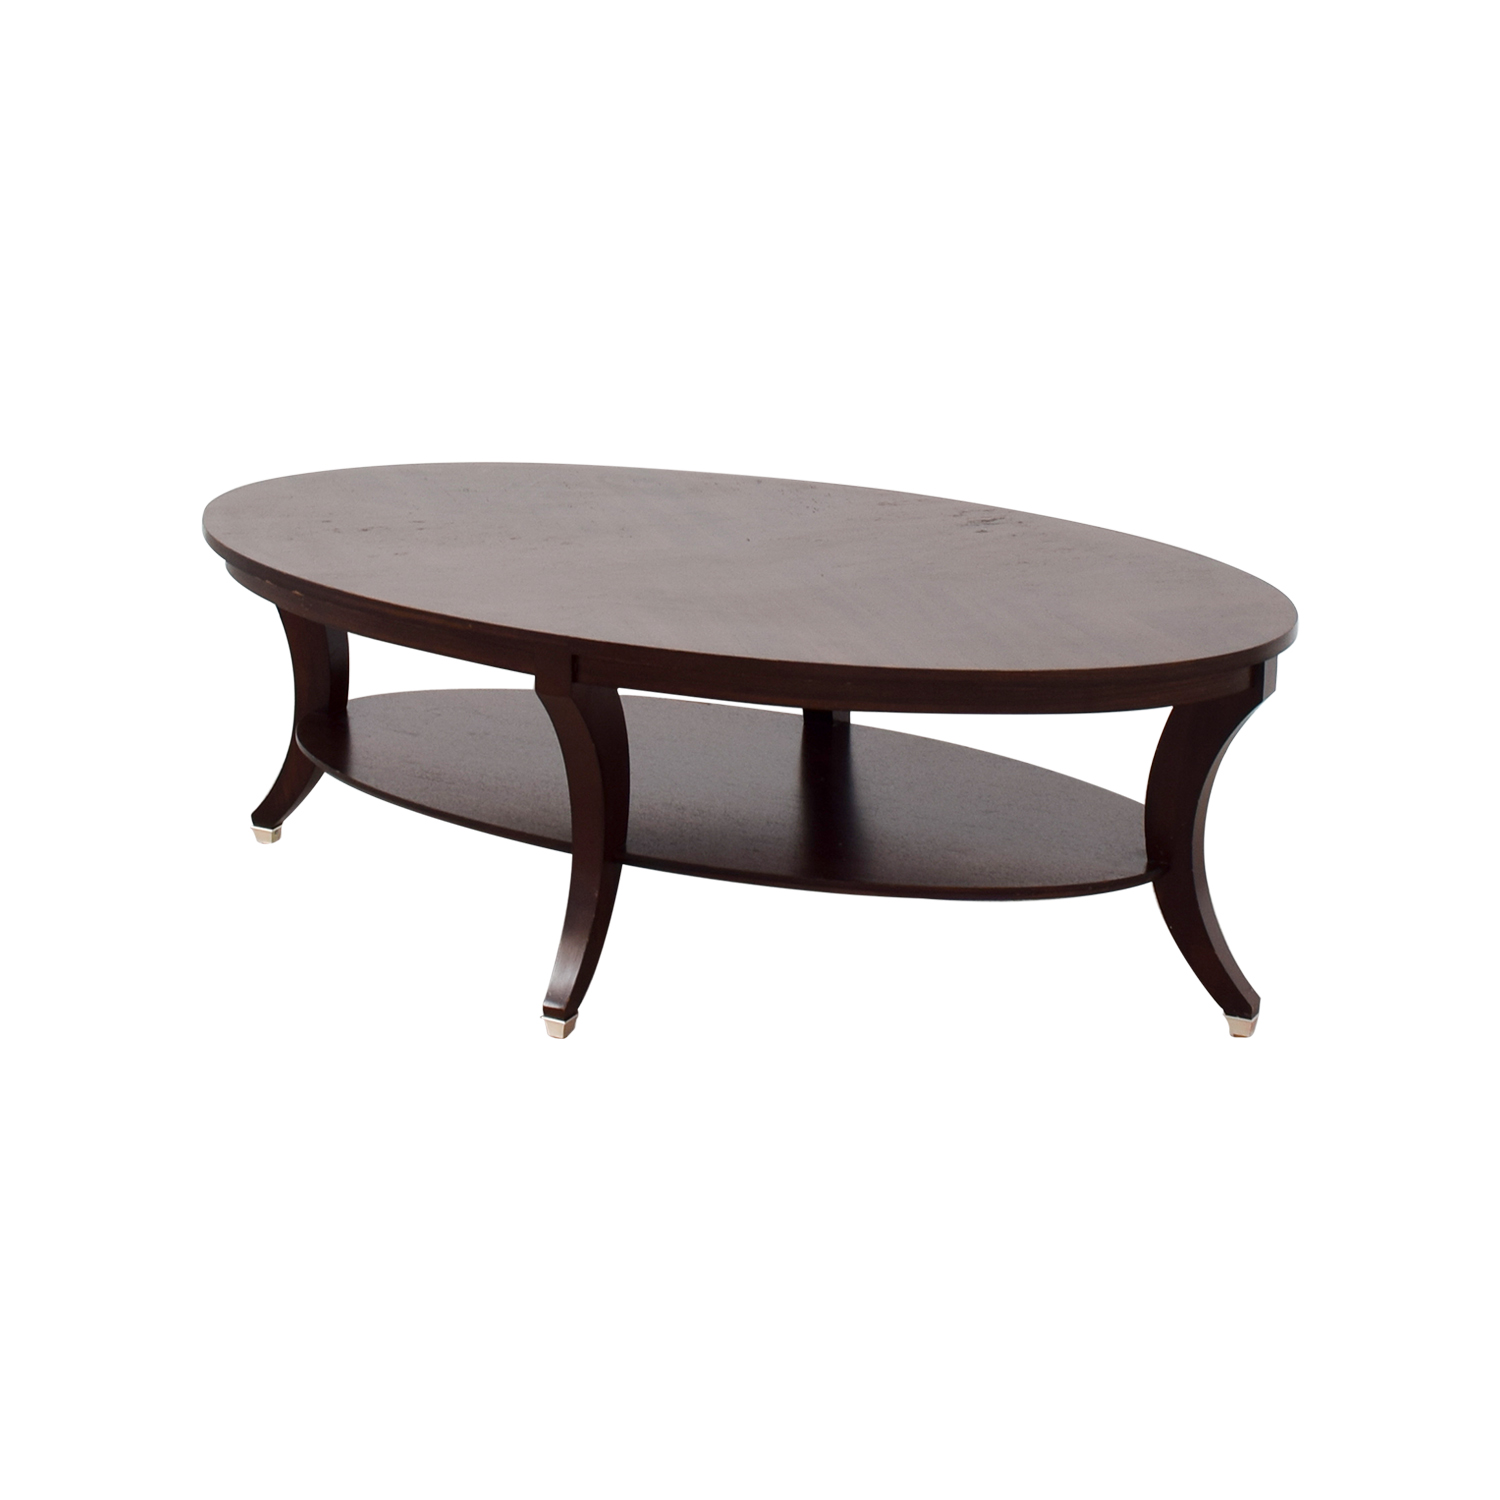 Beautiful ... Ethan Allen Ethan Allen Adler Oval Coffee Table On Sale ...